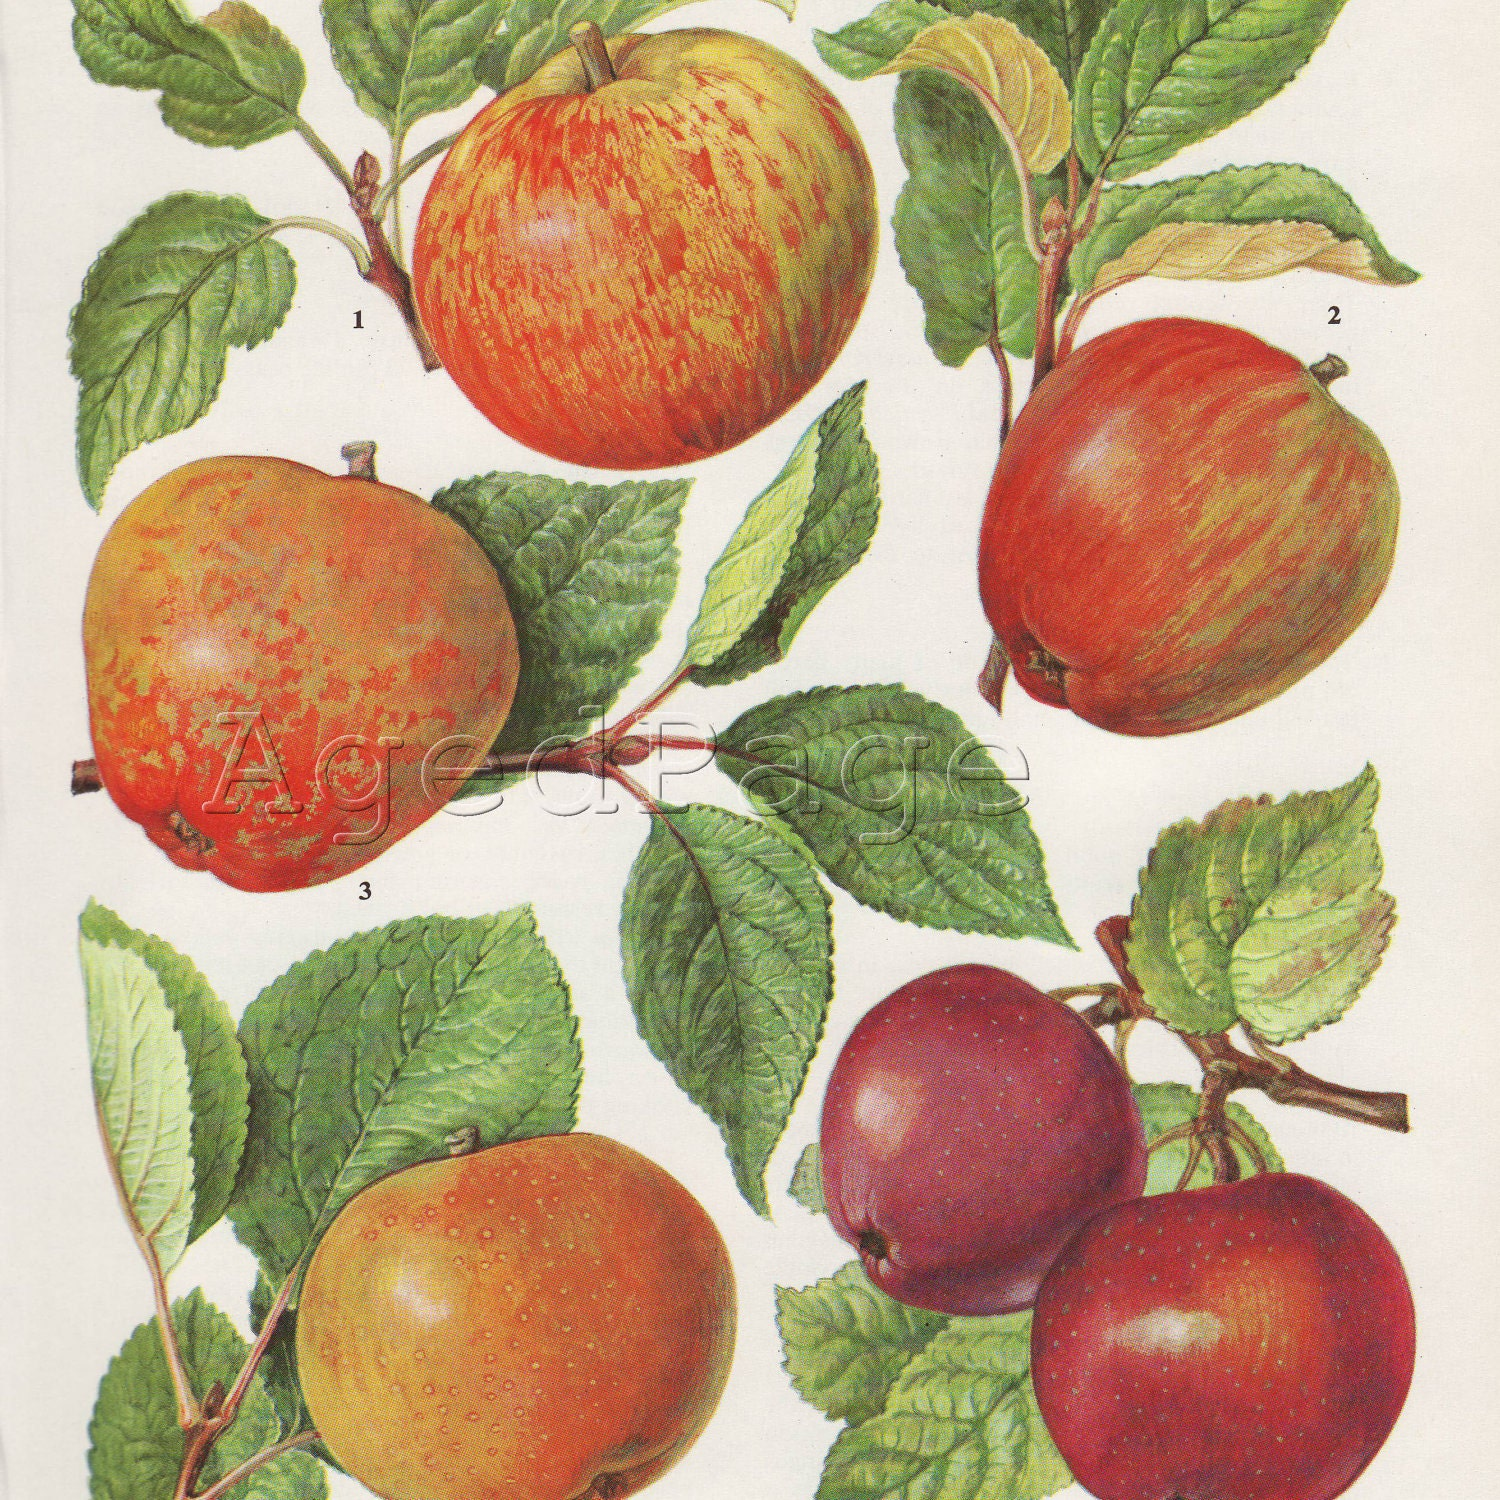 Vintage Botanical Print to Frame, Fruit Illustration, Home and Garden Decor, Apple Varieties 55